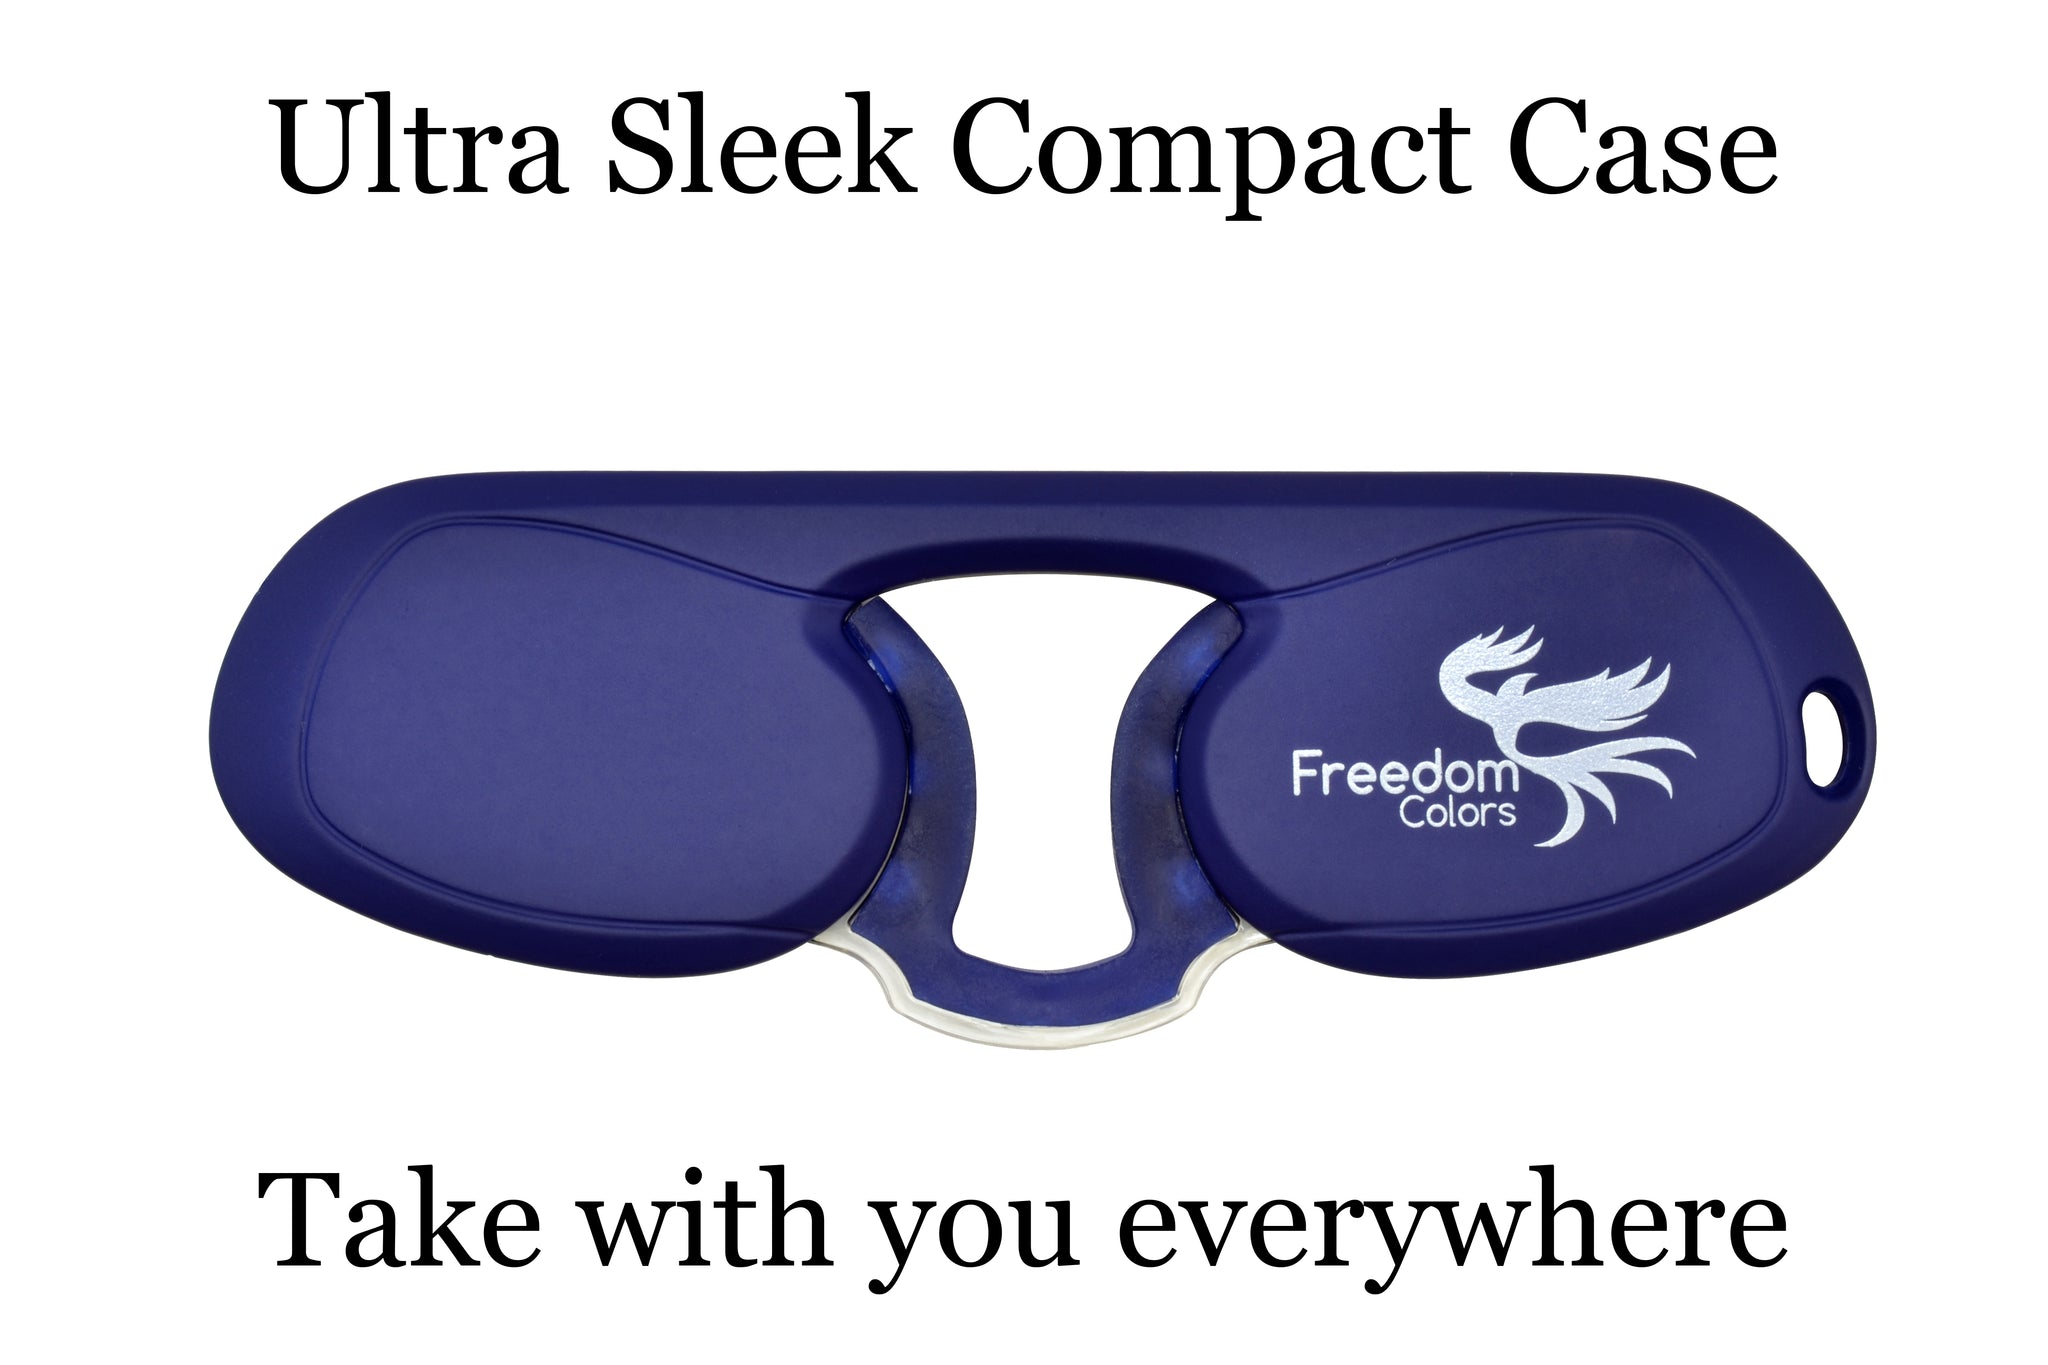 Pince Nez style Ultra Slim Reading Glasses. Navy +1.00 Strength